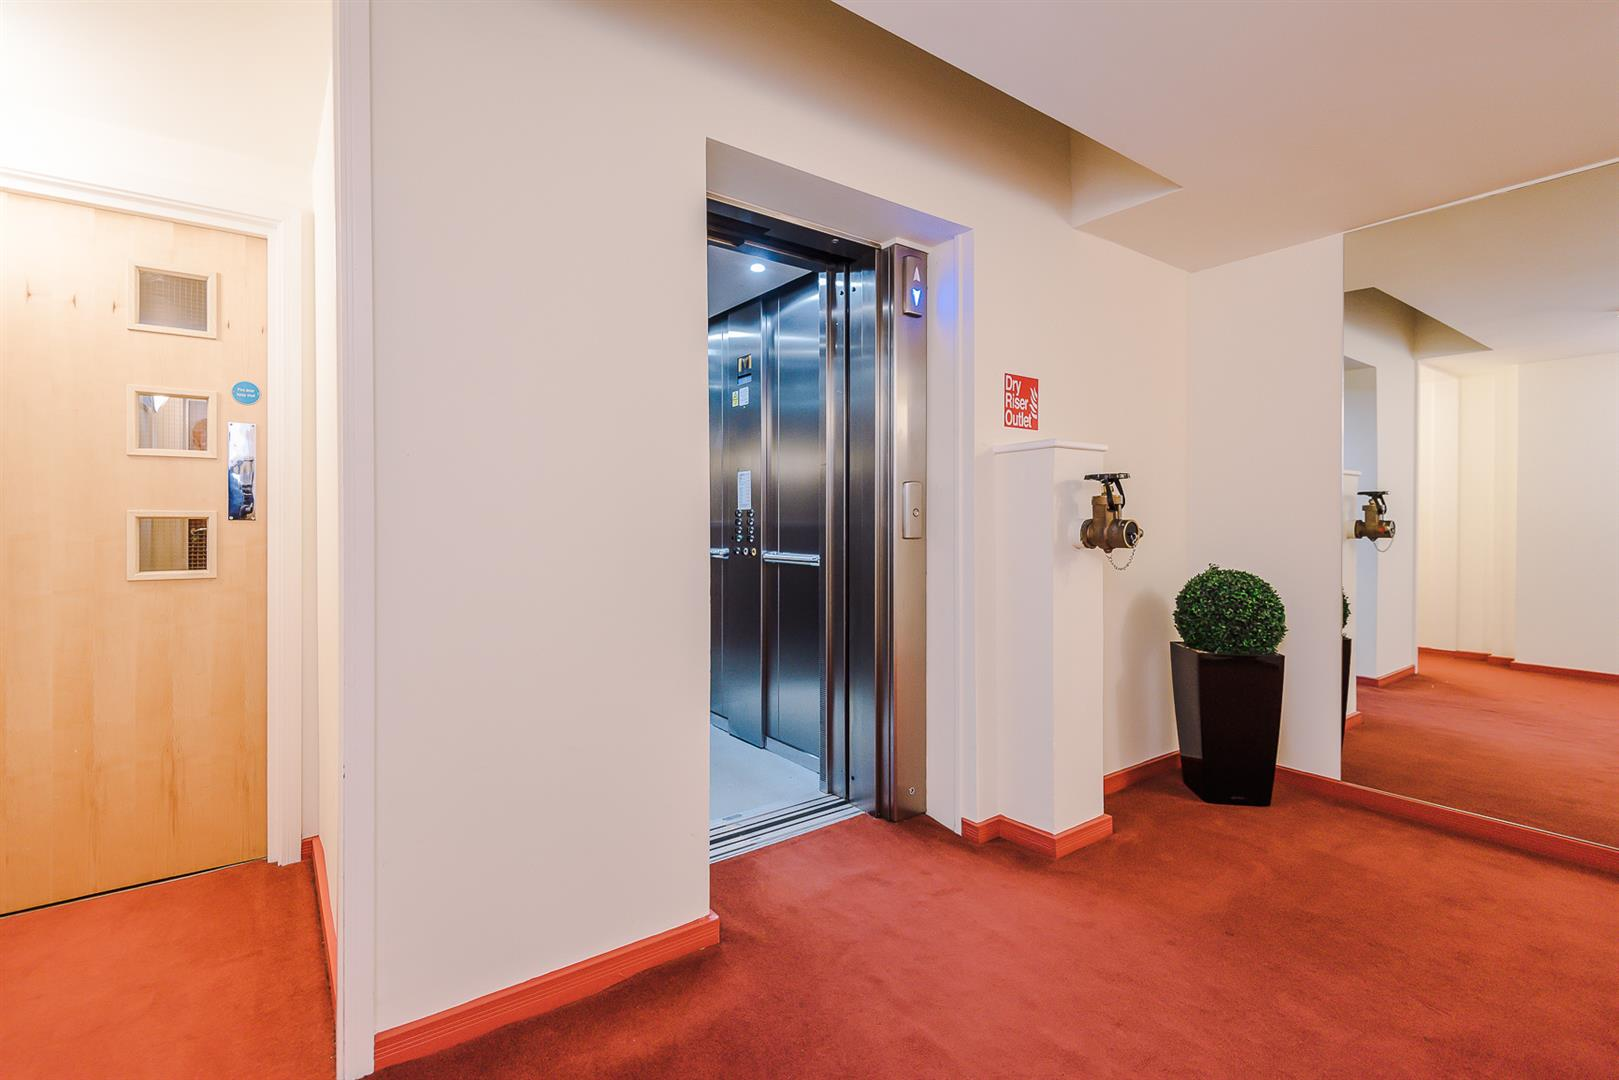 2 Bedroom Apartment For Sale Image 22